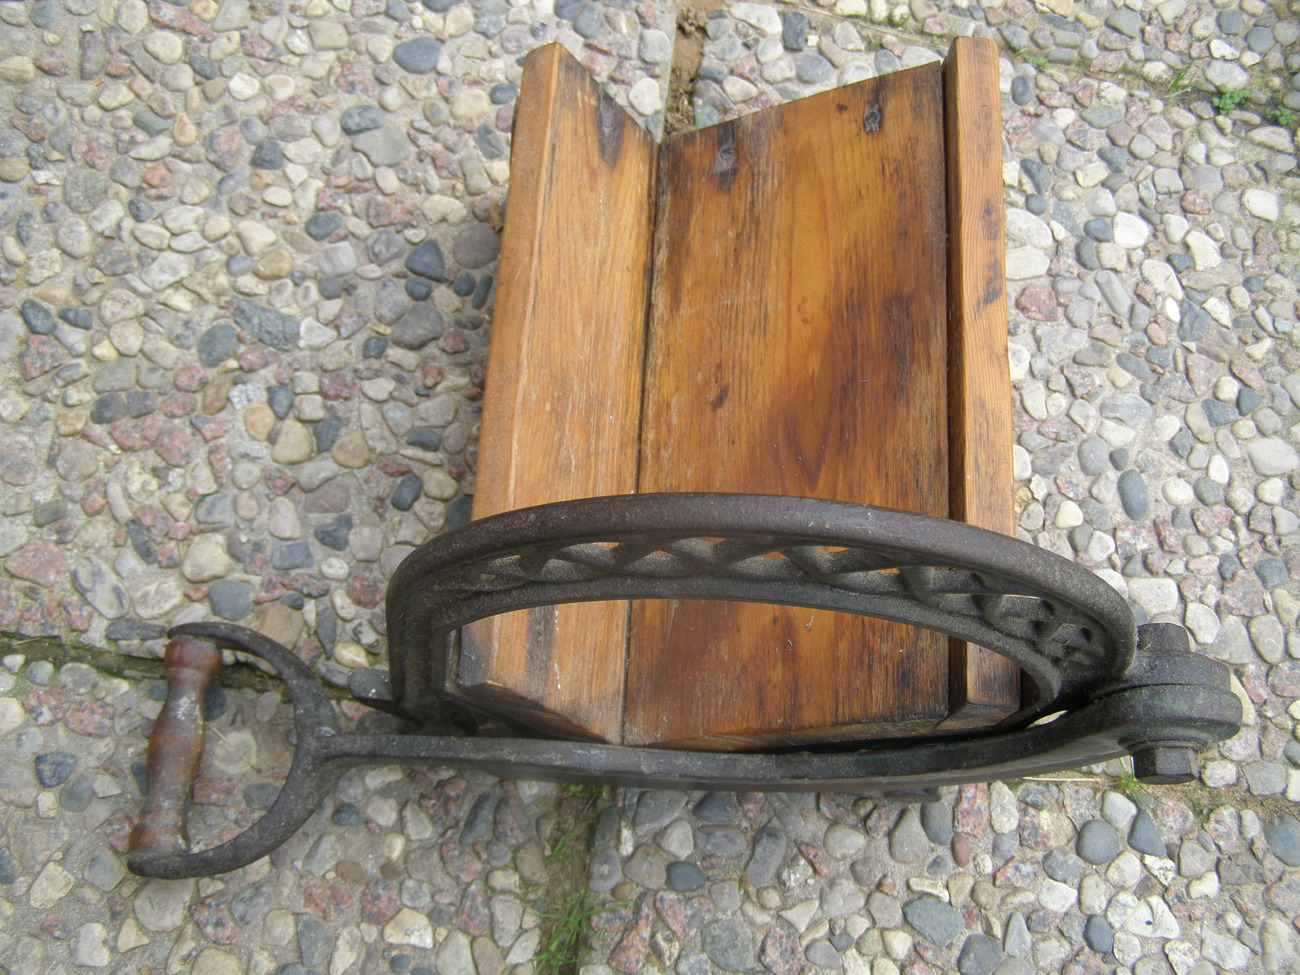 Tobacco cutter cast iron and wood primitives